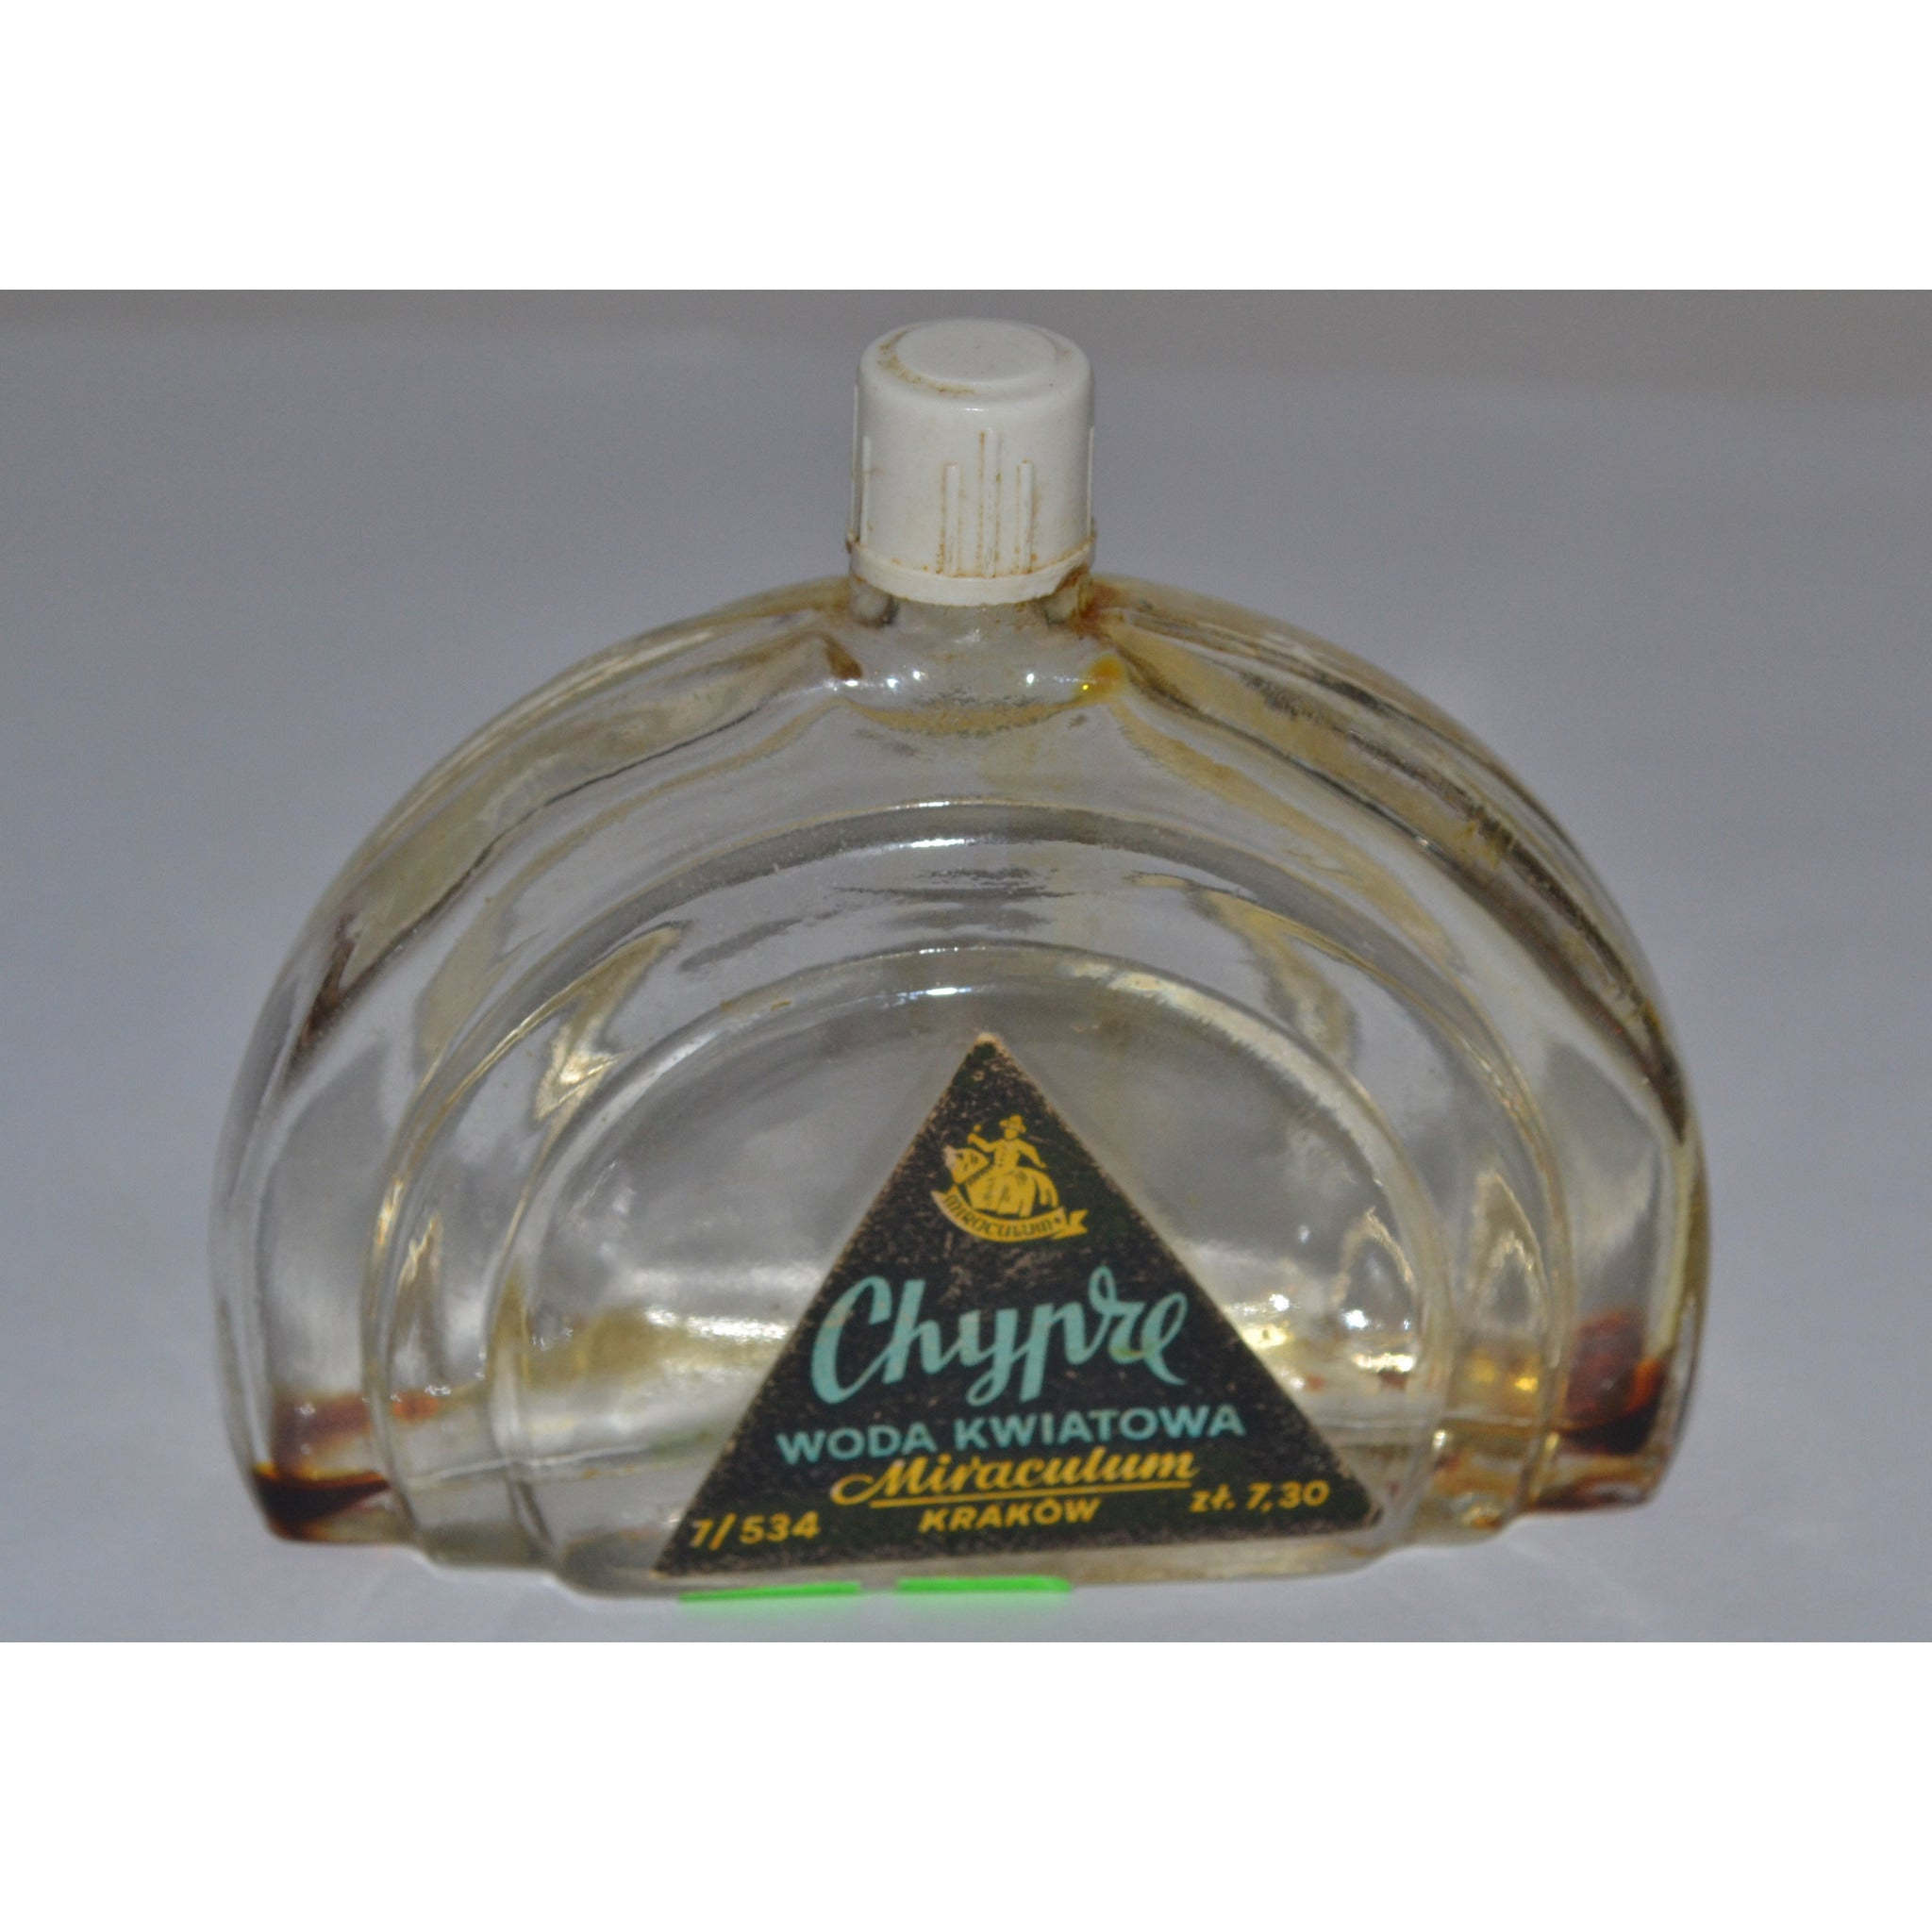 Vintage Russian Miraculum Chypre Perfume